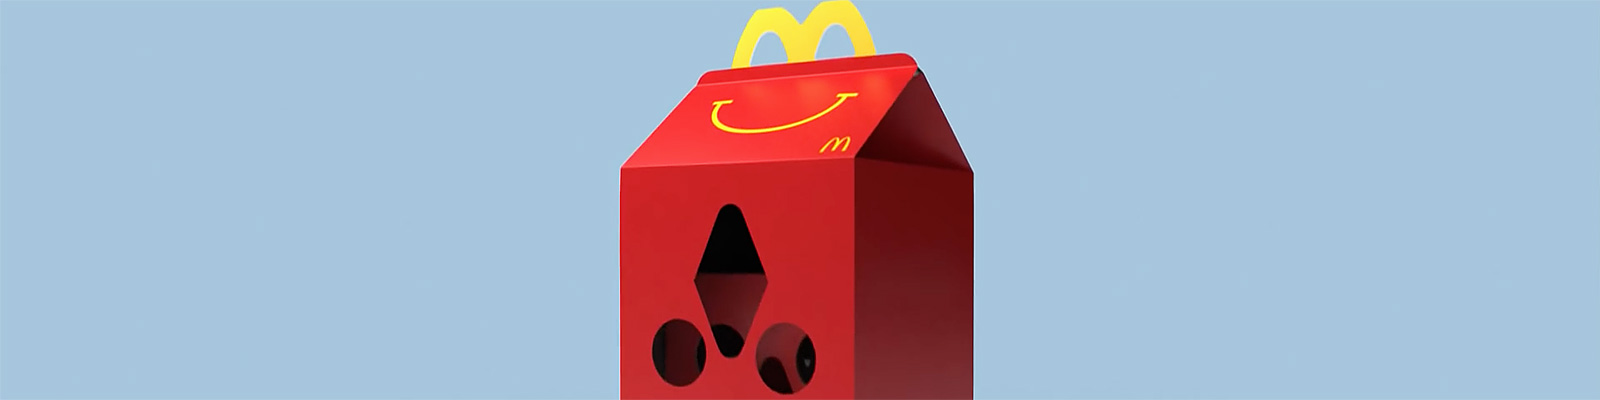 Happy Goggles - A virtual reality headset made from a Happy Meal Box.(McDonald's Sverige)